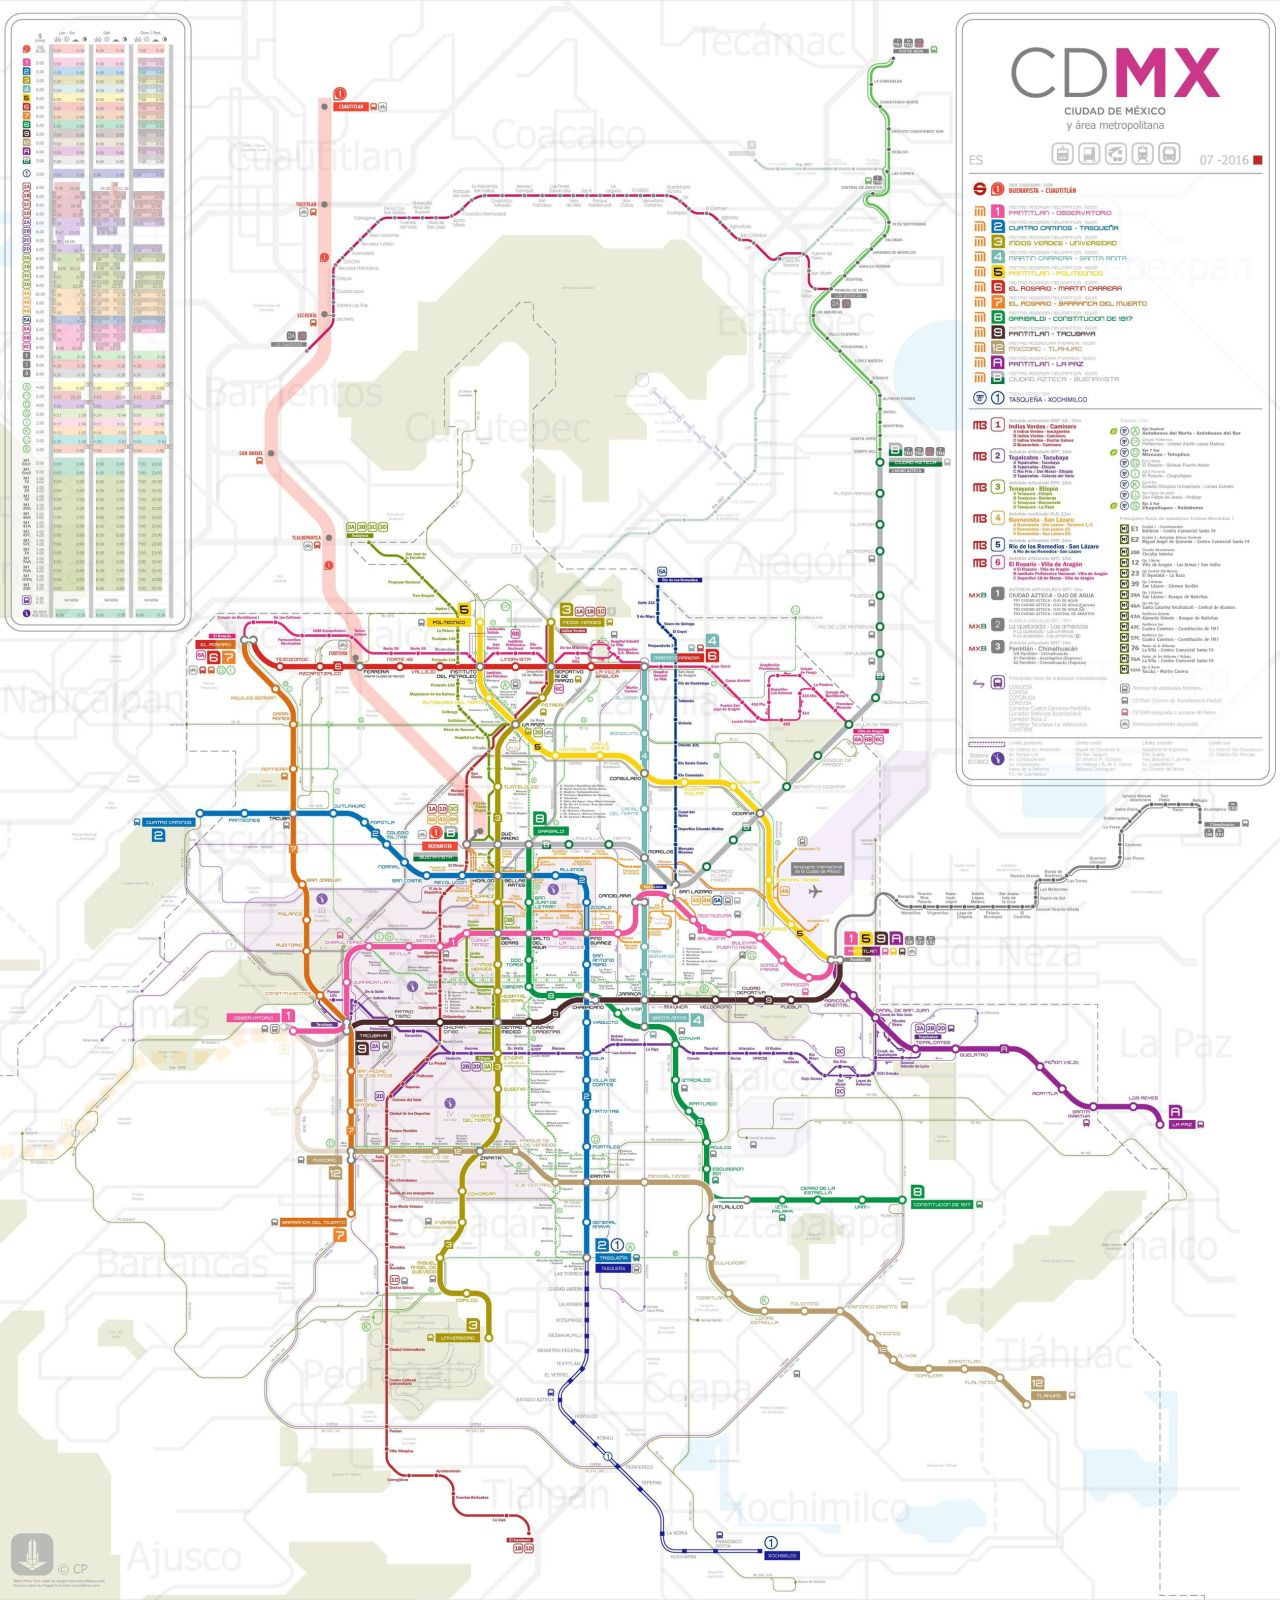 Public Transportation Network of the Mexico City Urban Area